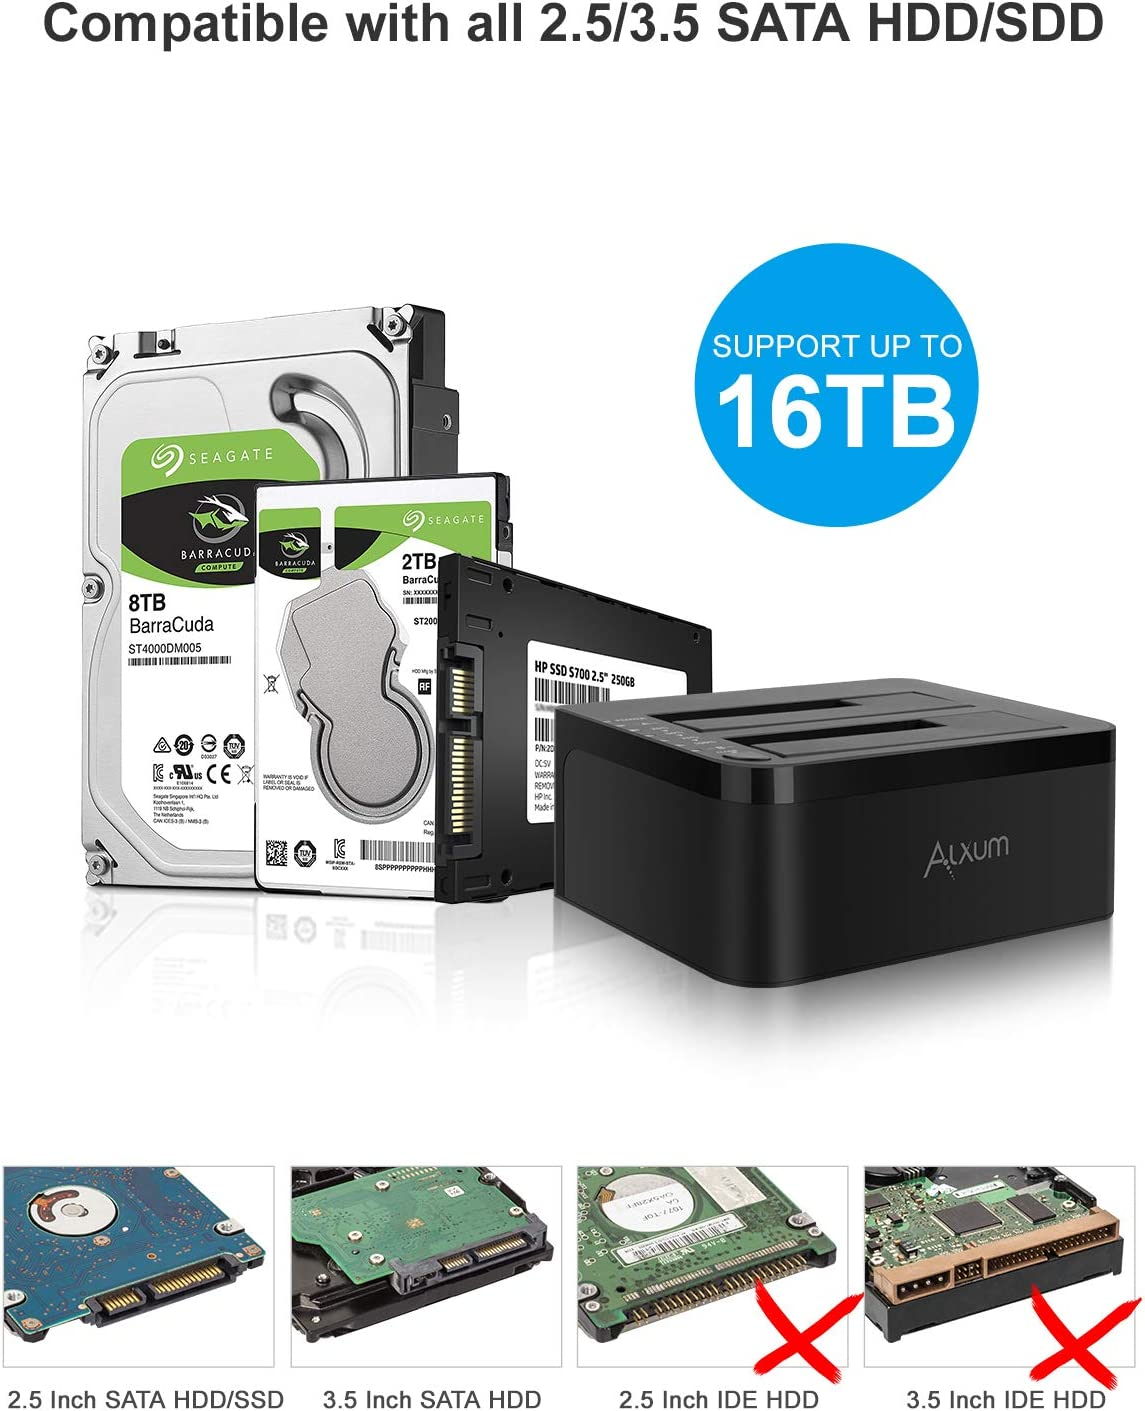 White Support Offline Clone Alxum USB C to SATA Hard Drive Docking Station with Built-in Cooling Fan and Dust Cover for 2.5 inch SATA HDD SSD